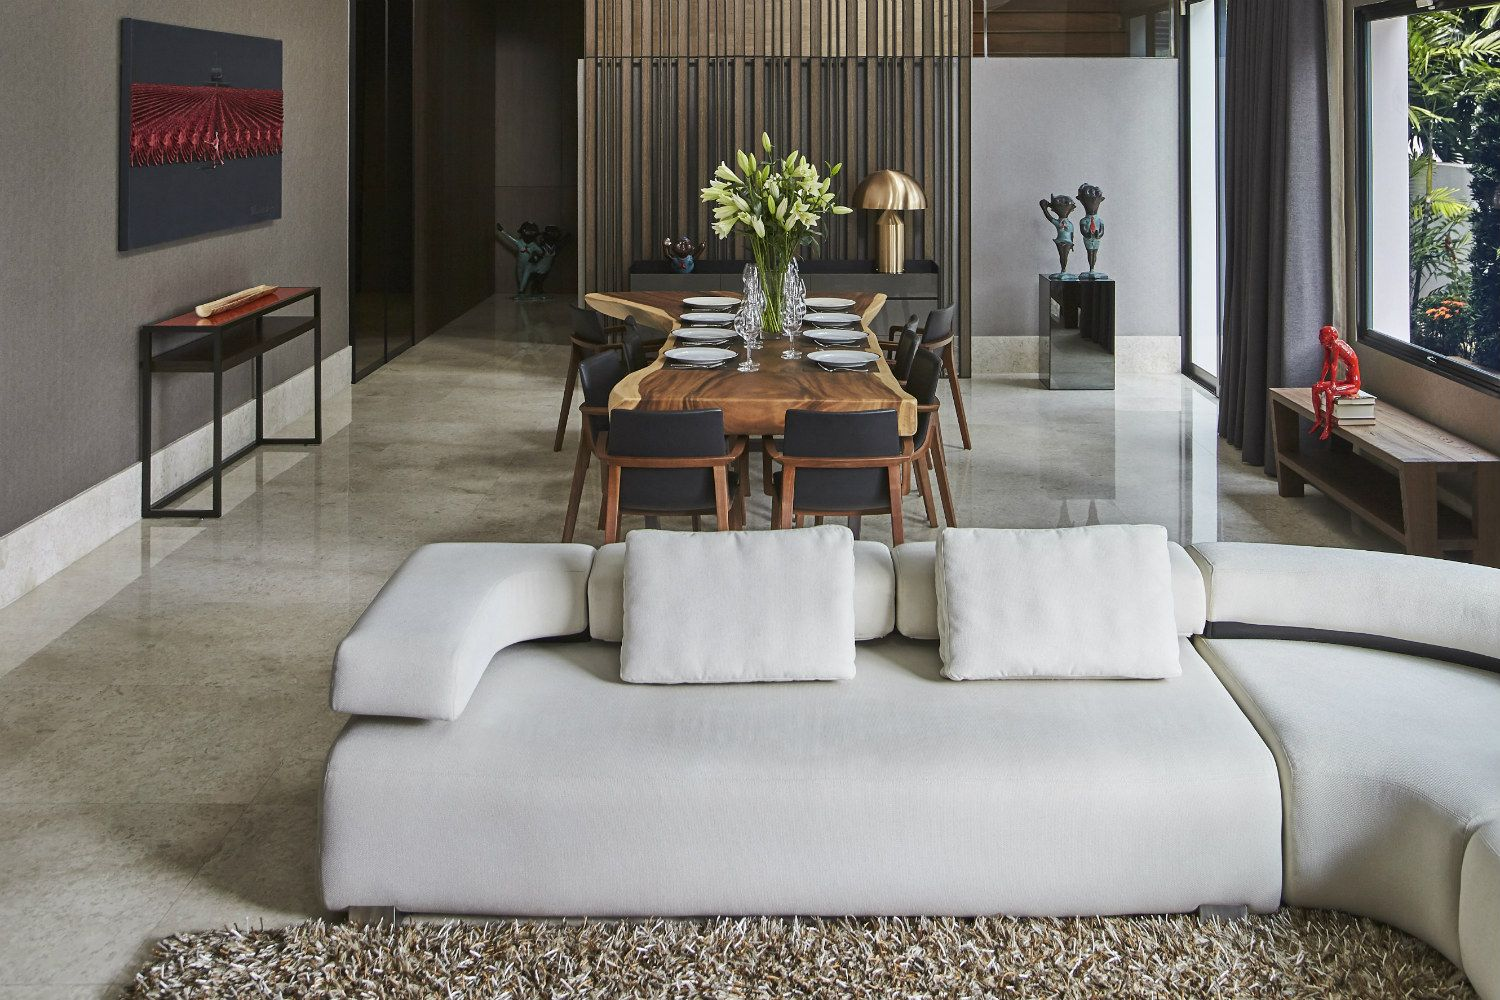 Home Tour: A Modern House That Celebrates Art